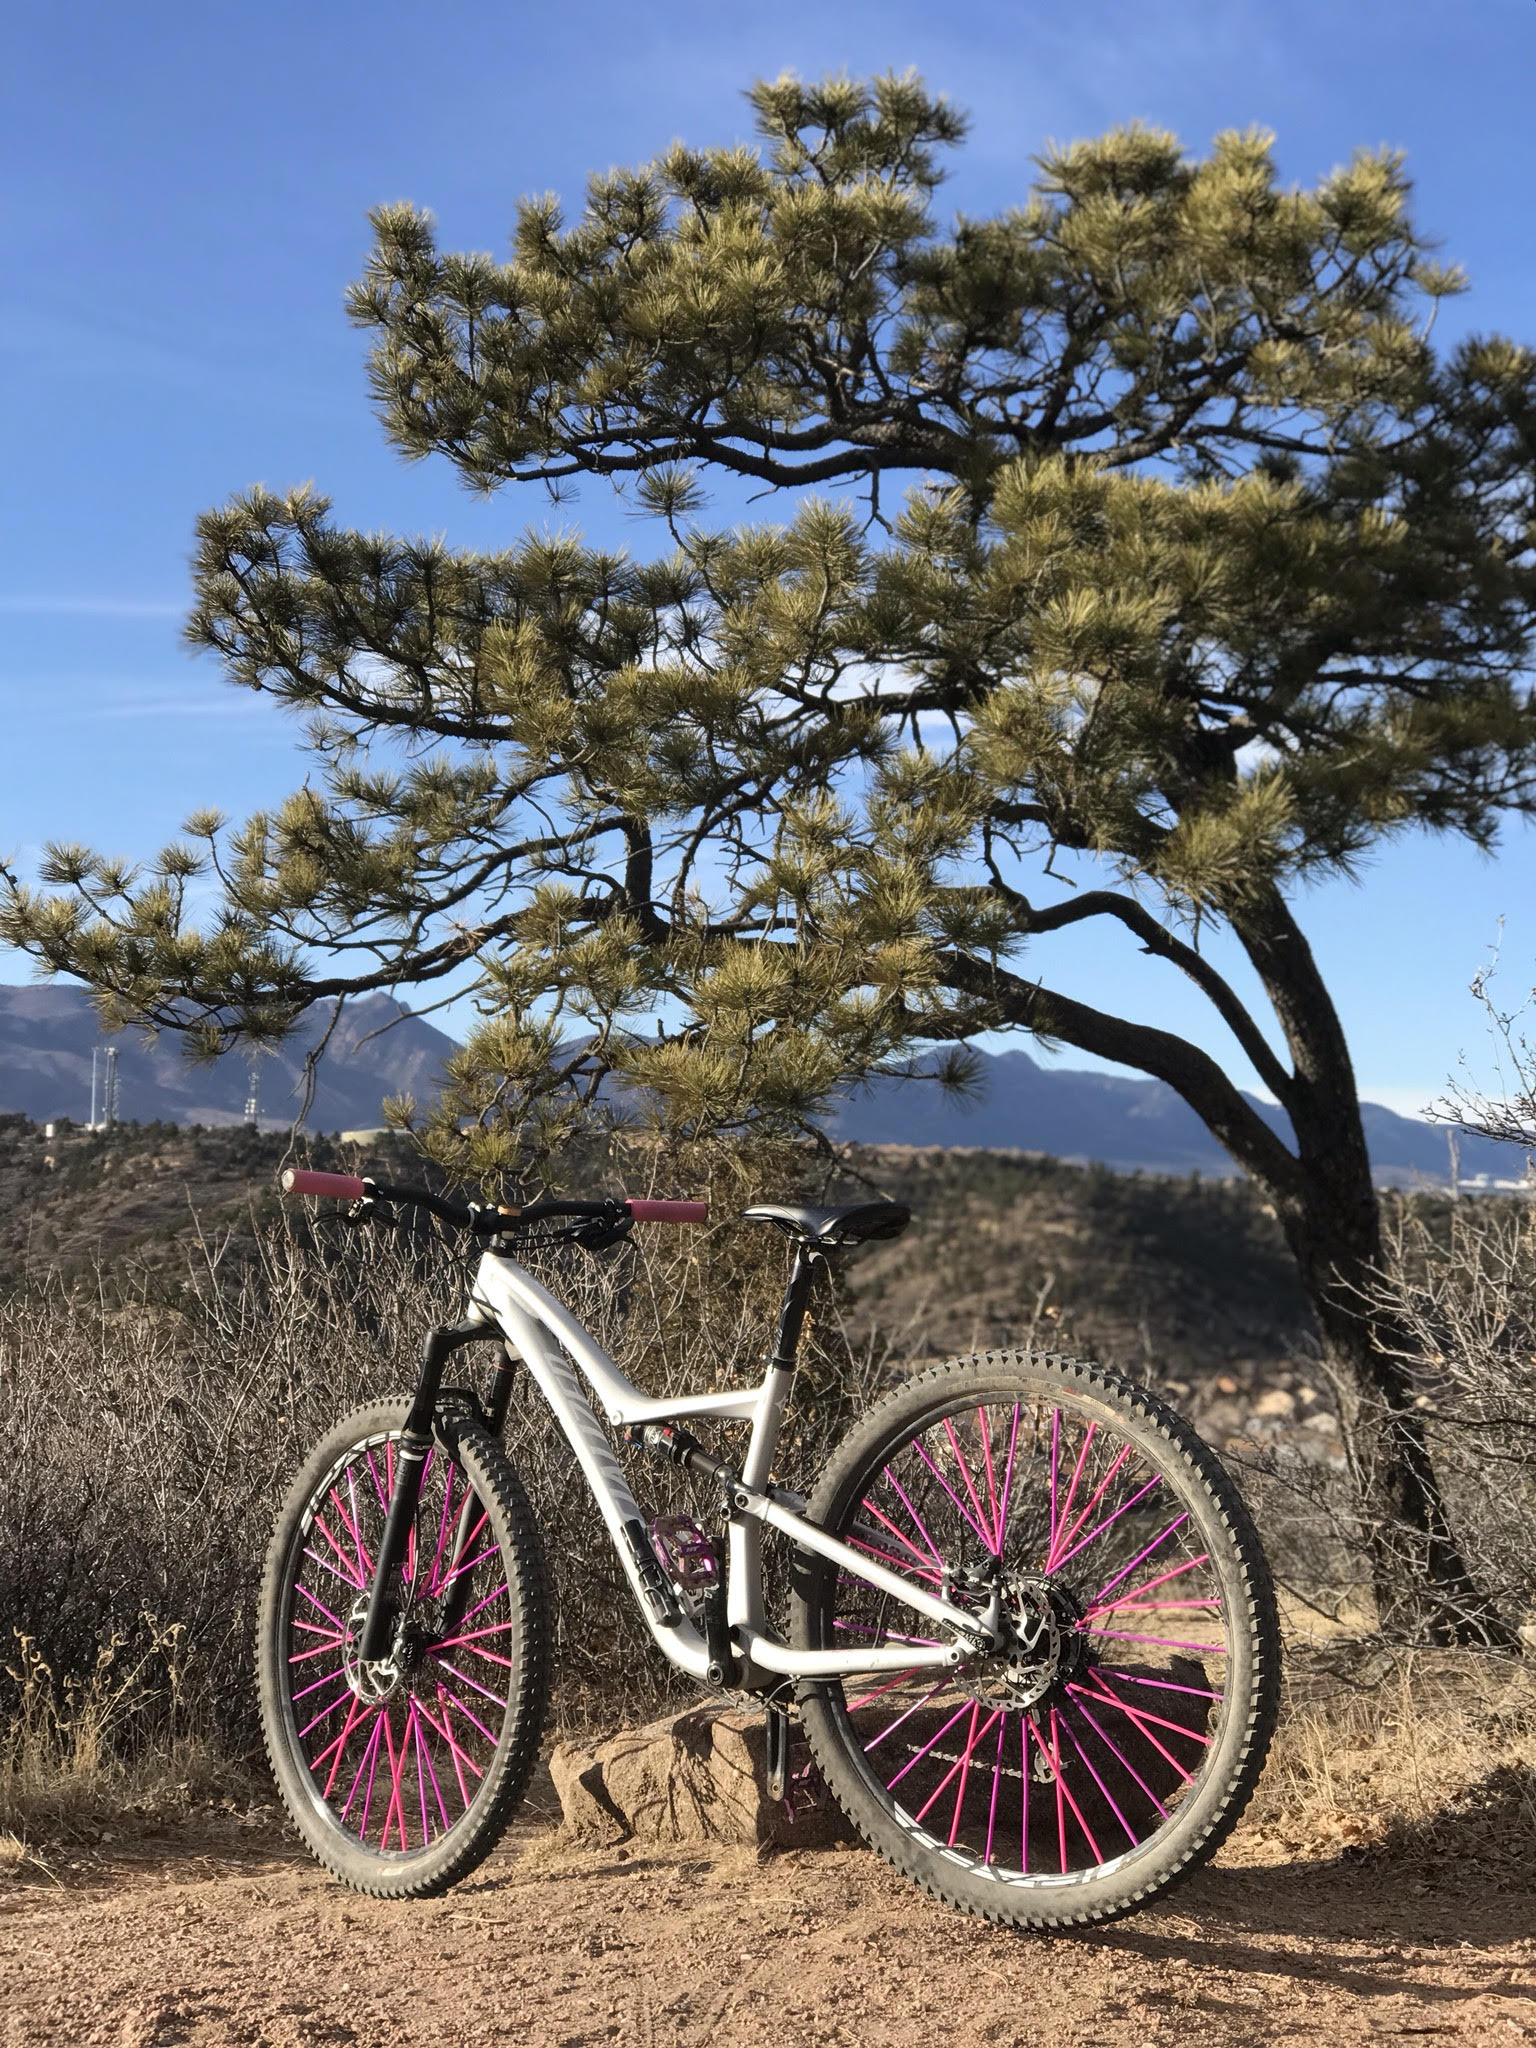 417757e467e I could ride uphill better! I could ride downhill better! I could ride  better altogether! My boyfriend helped me upgrade my bike accessories  again; ...